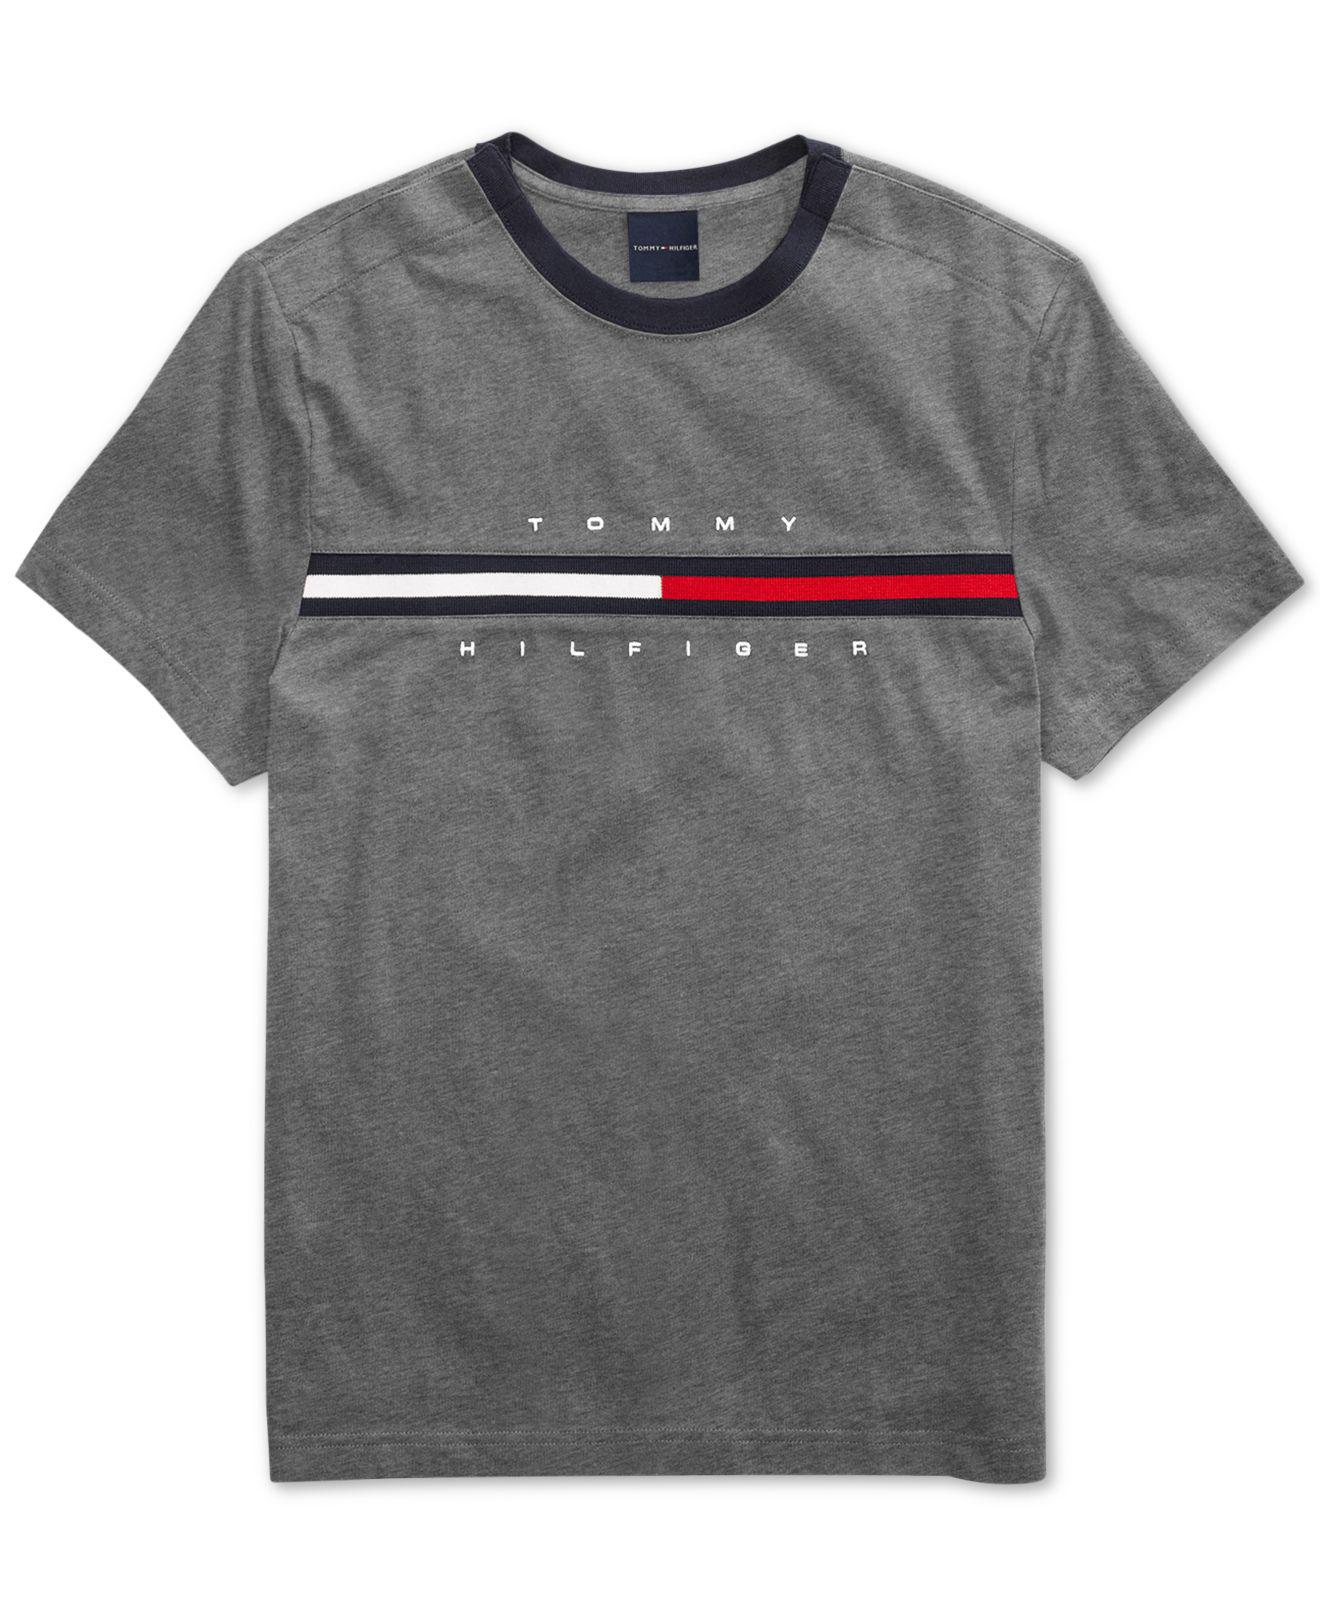 f2669f41 Tommy Hilfiger. Men's Gray Tino T-shirt With Magnetic Closure At Shoulders